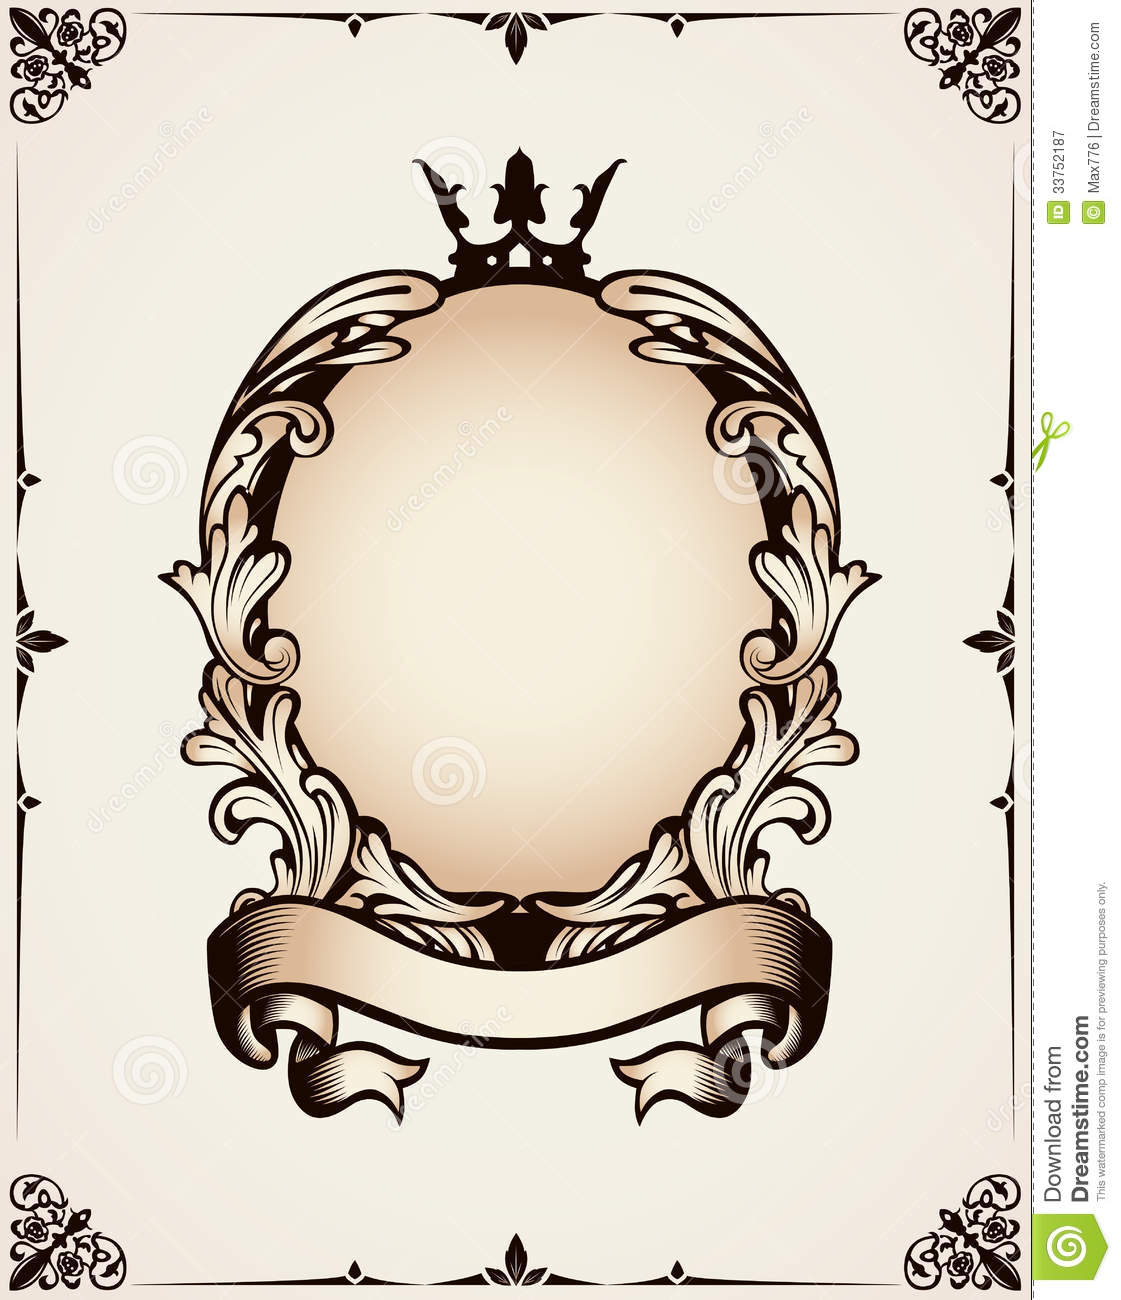 Decorative Royal Frame Royalty Free Stock Photography - Image ...